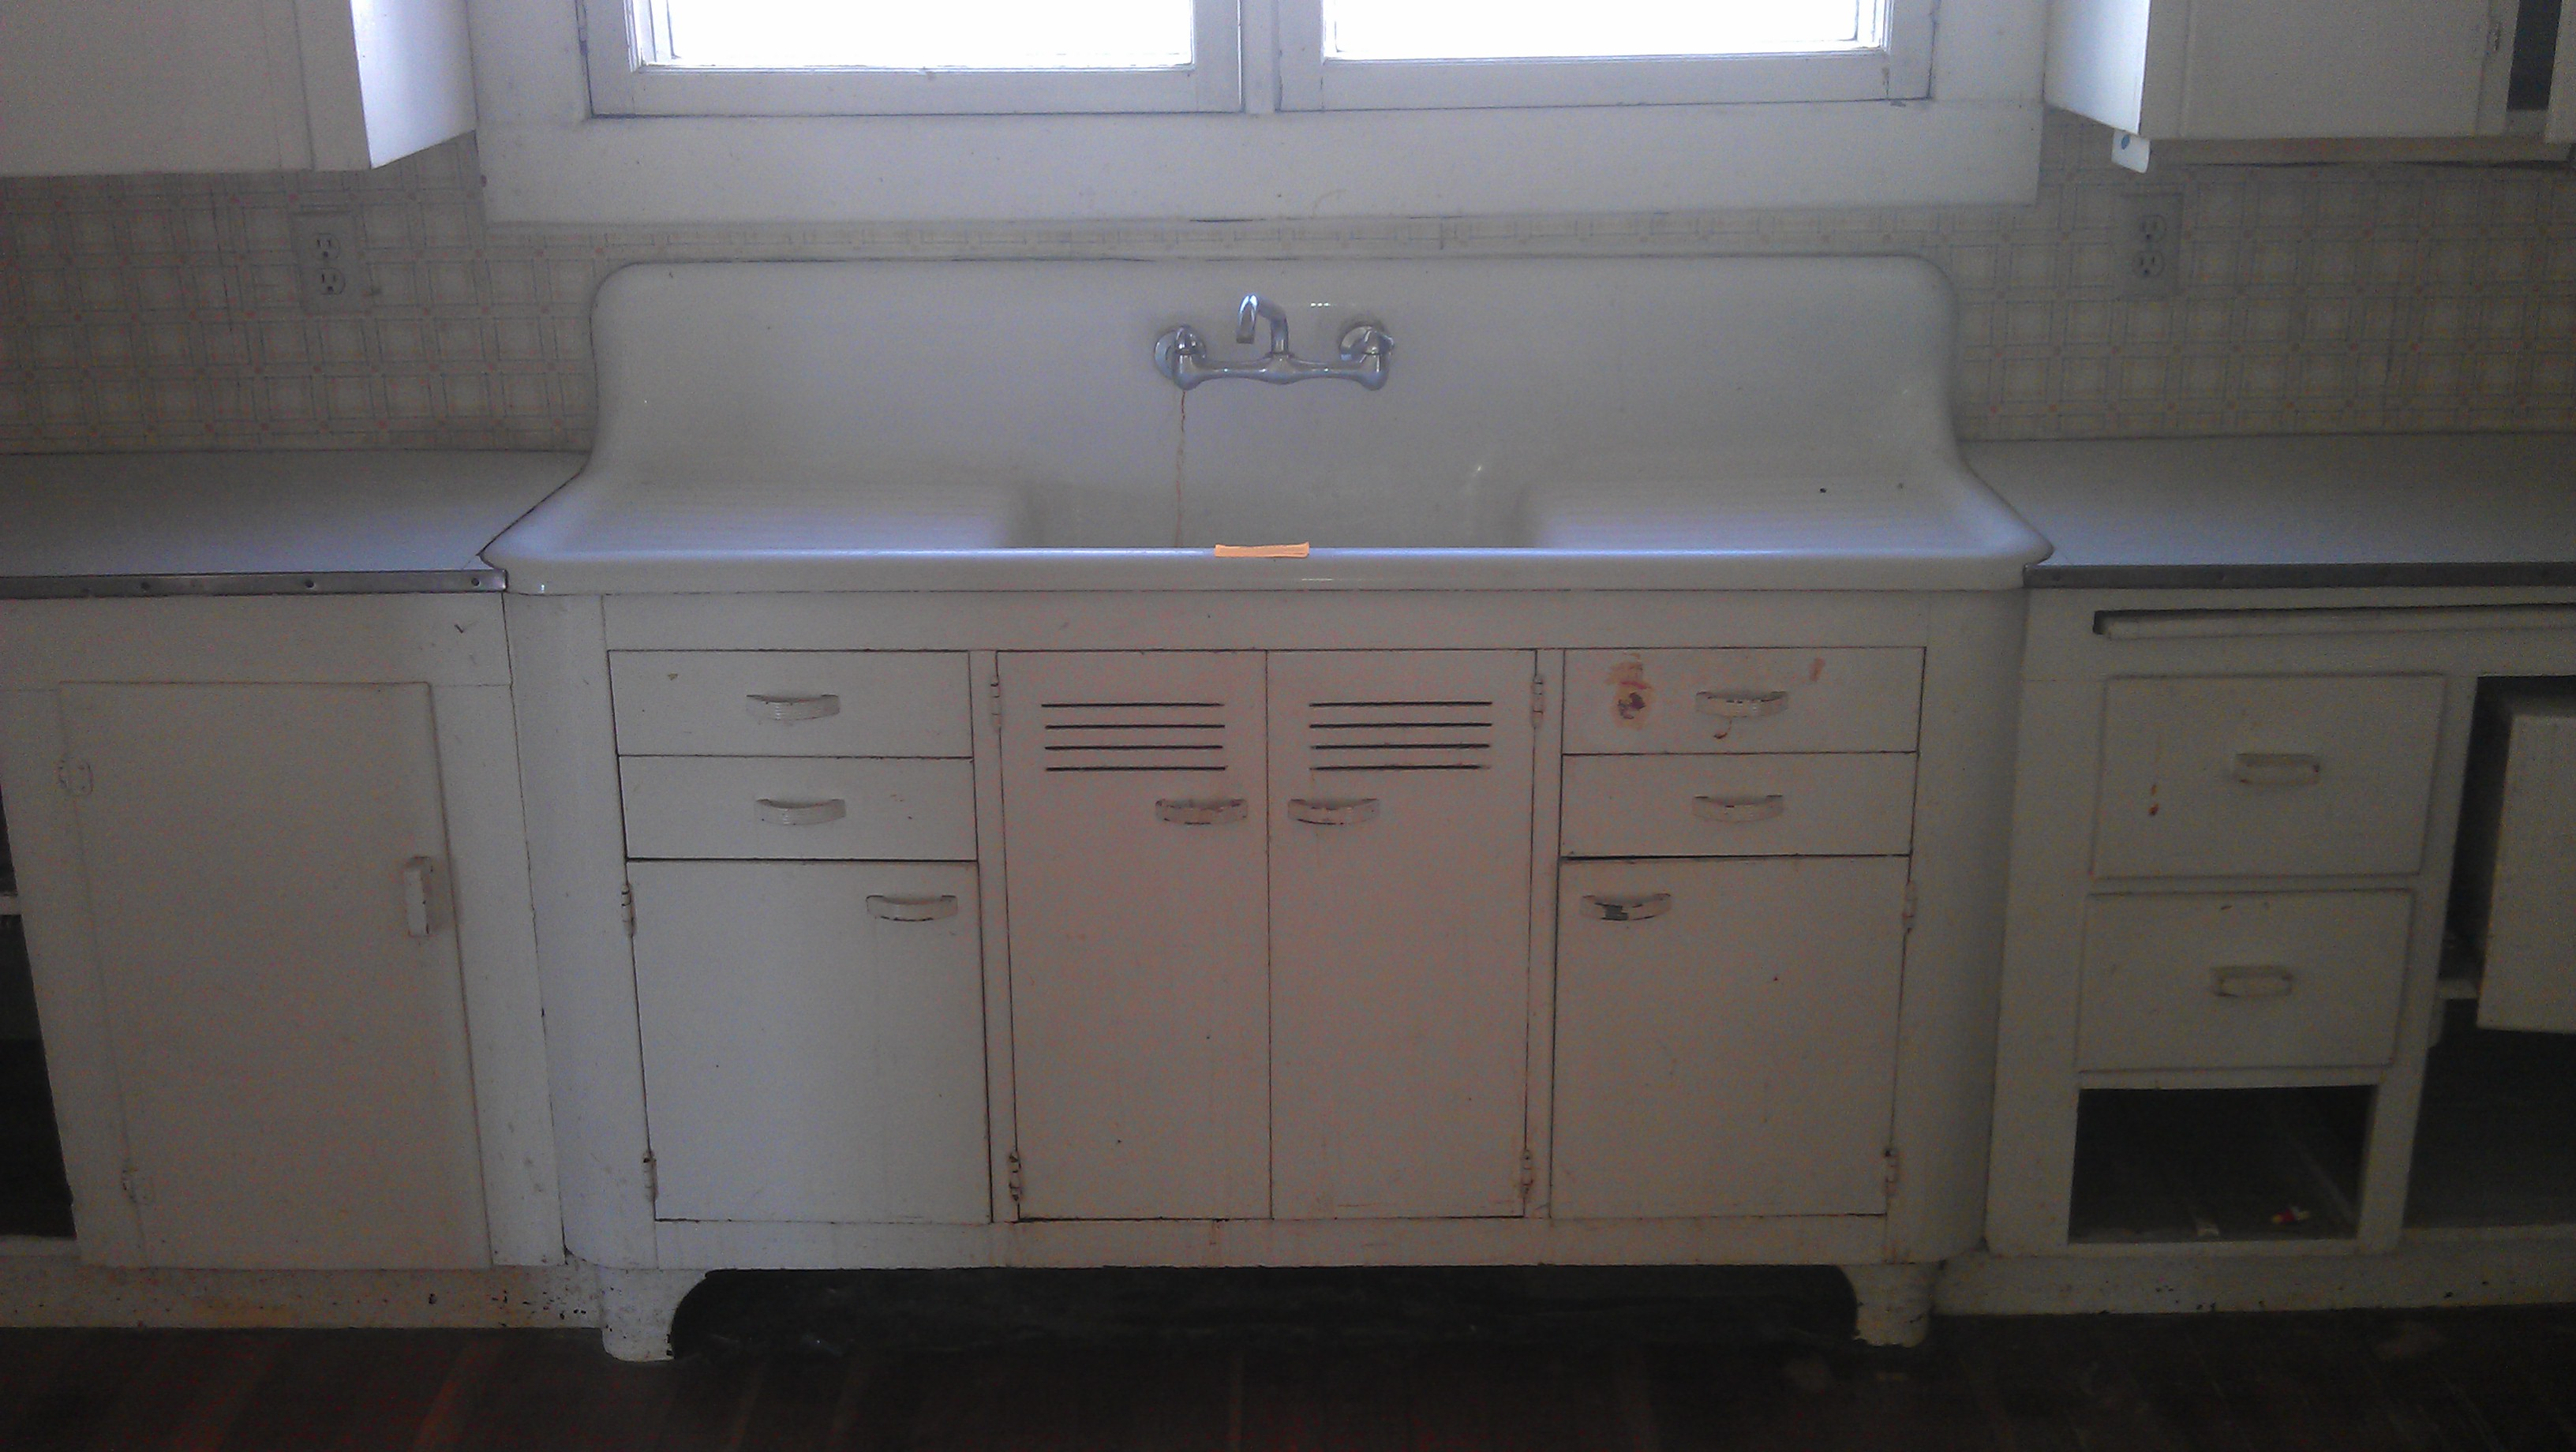 Perfect Vintage Double Drainboard Kitchen Sink 3264 x 1840 · 848 kB · jpeg